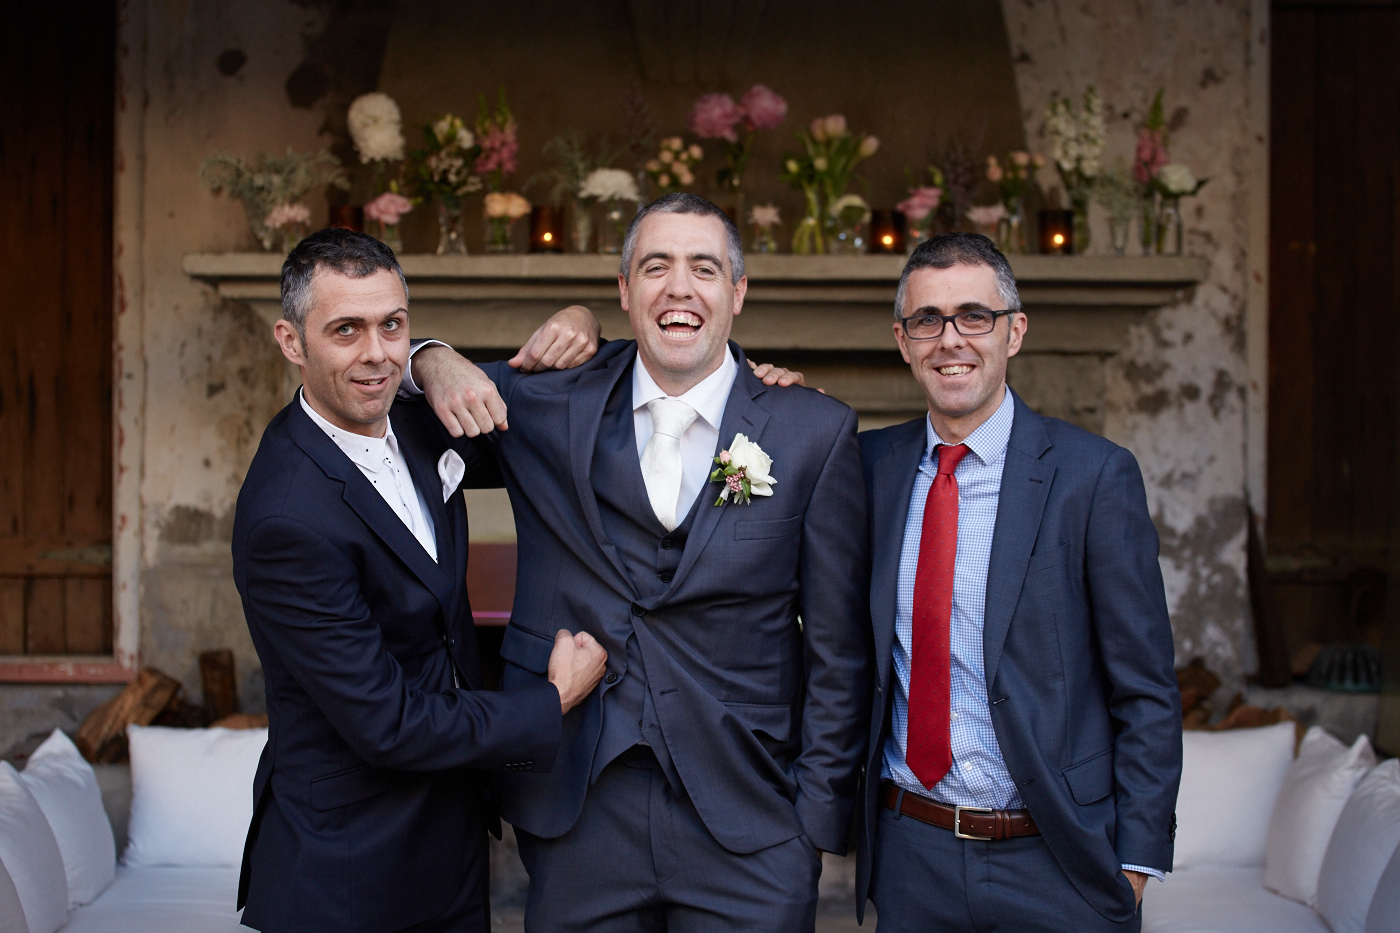 The groom with his brothers